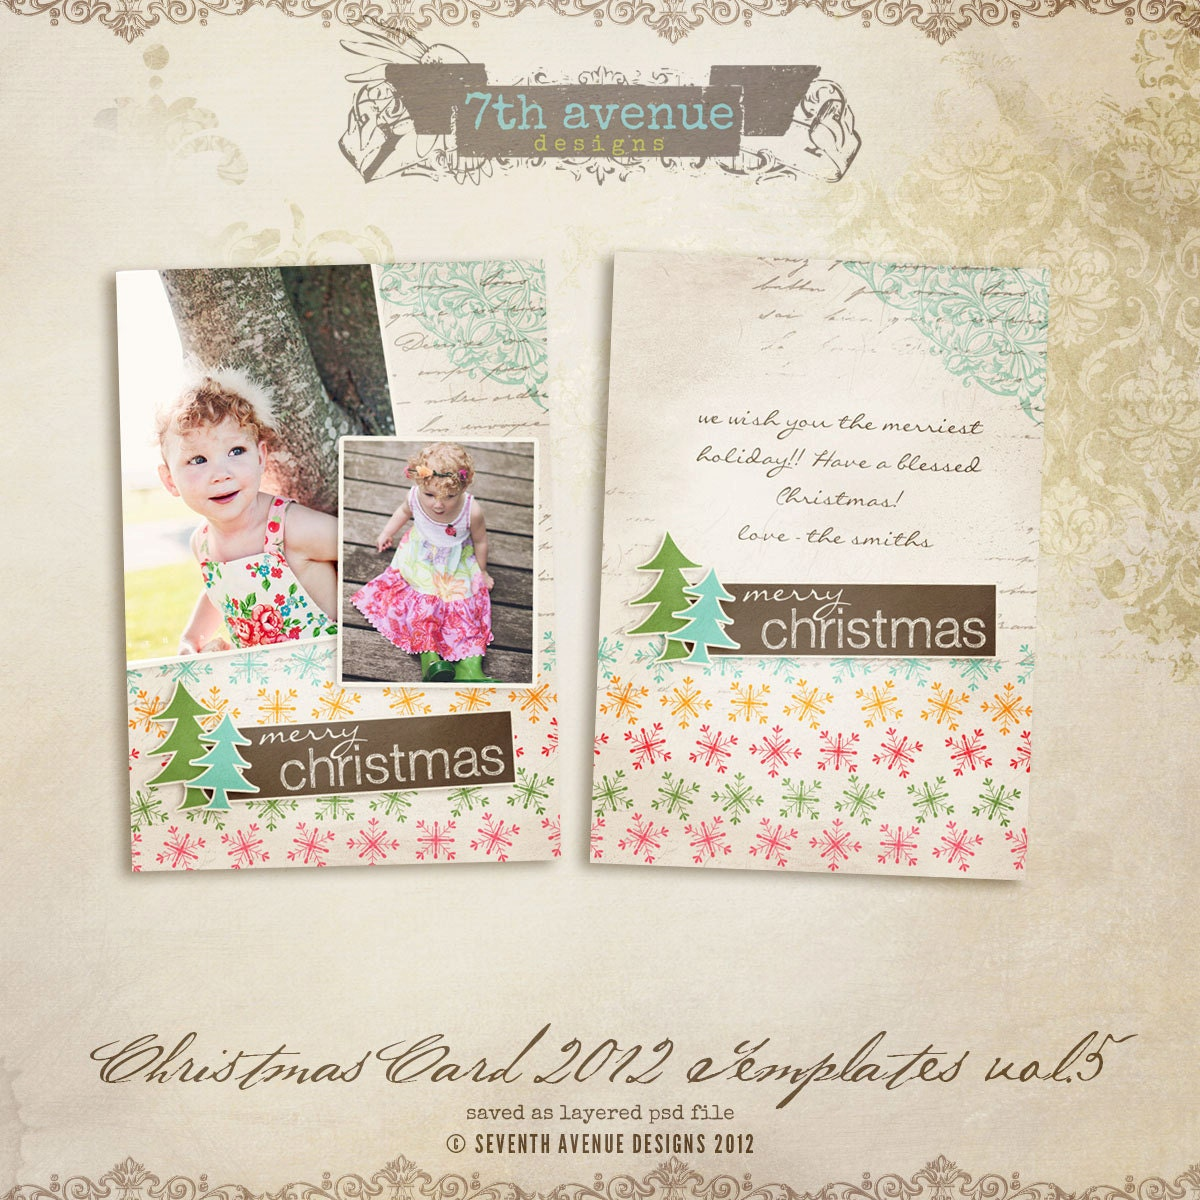 2012 christmas card templates vol 5 5x7 inch by 7thavenuedesigns. Black Bedroom Furniture Sets. Home Design Ideas